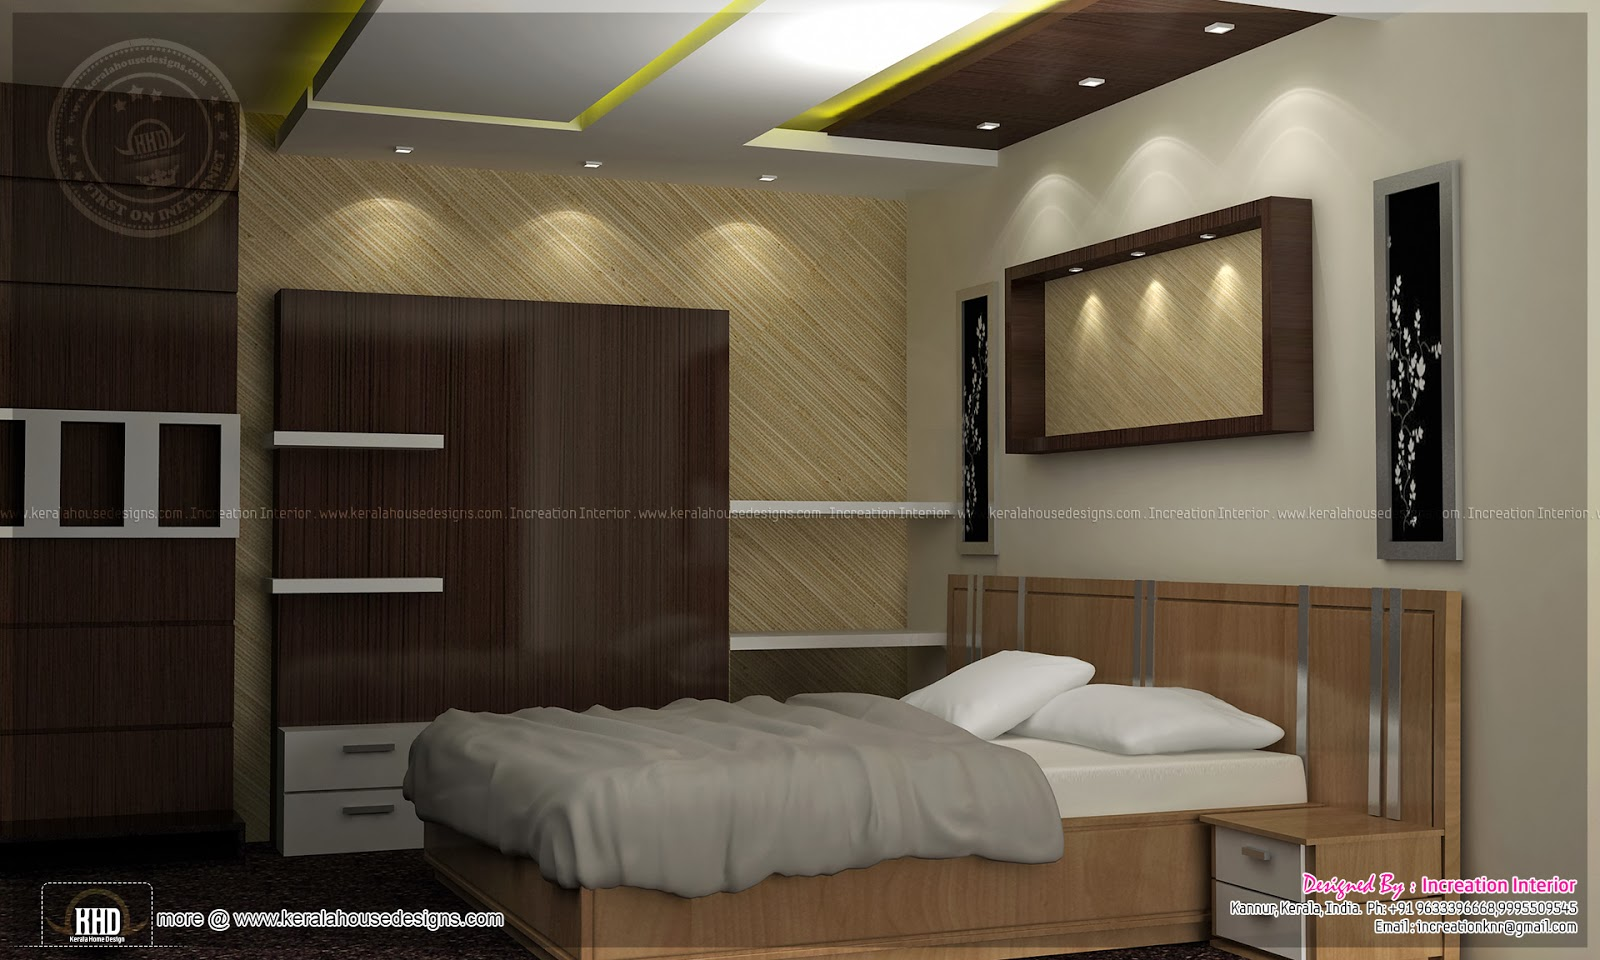 Kerala home design interior bedroom - Bedroom Interior Bedroom Interior Courtyard